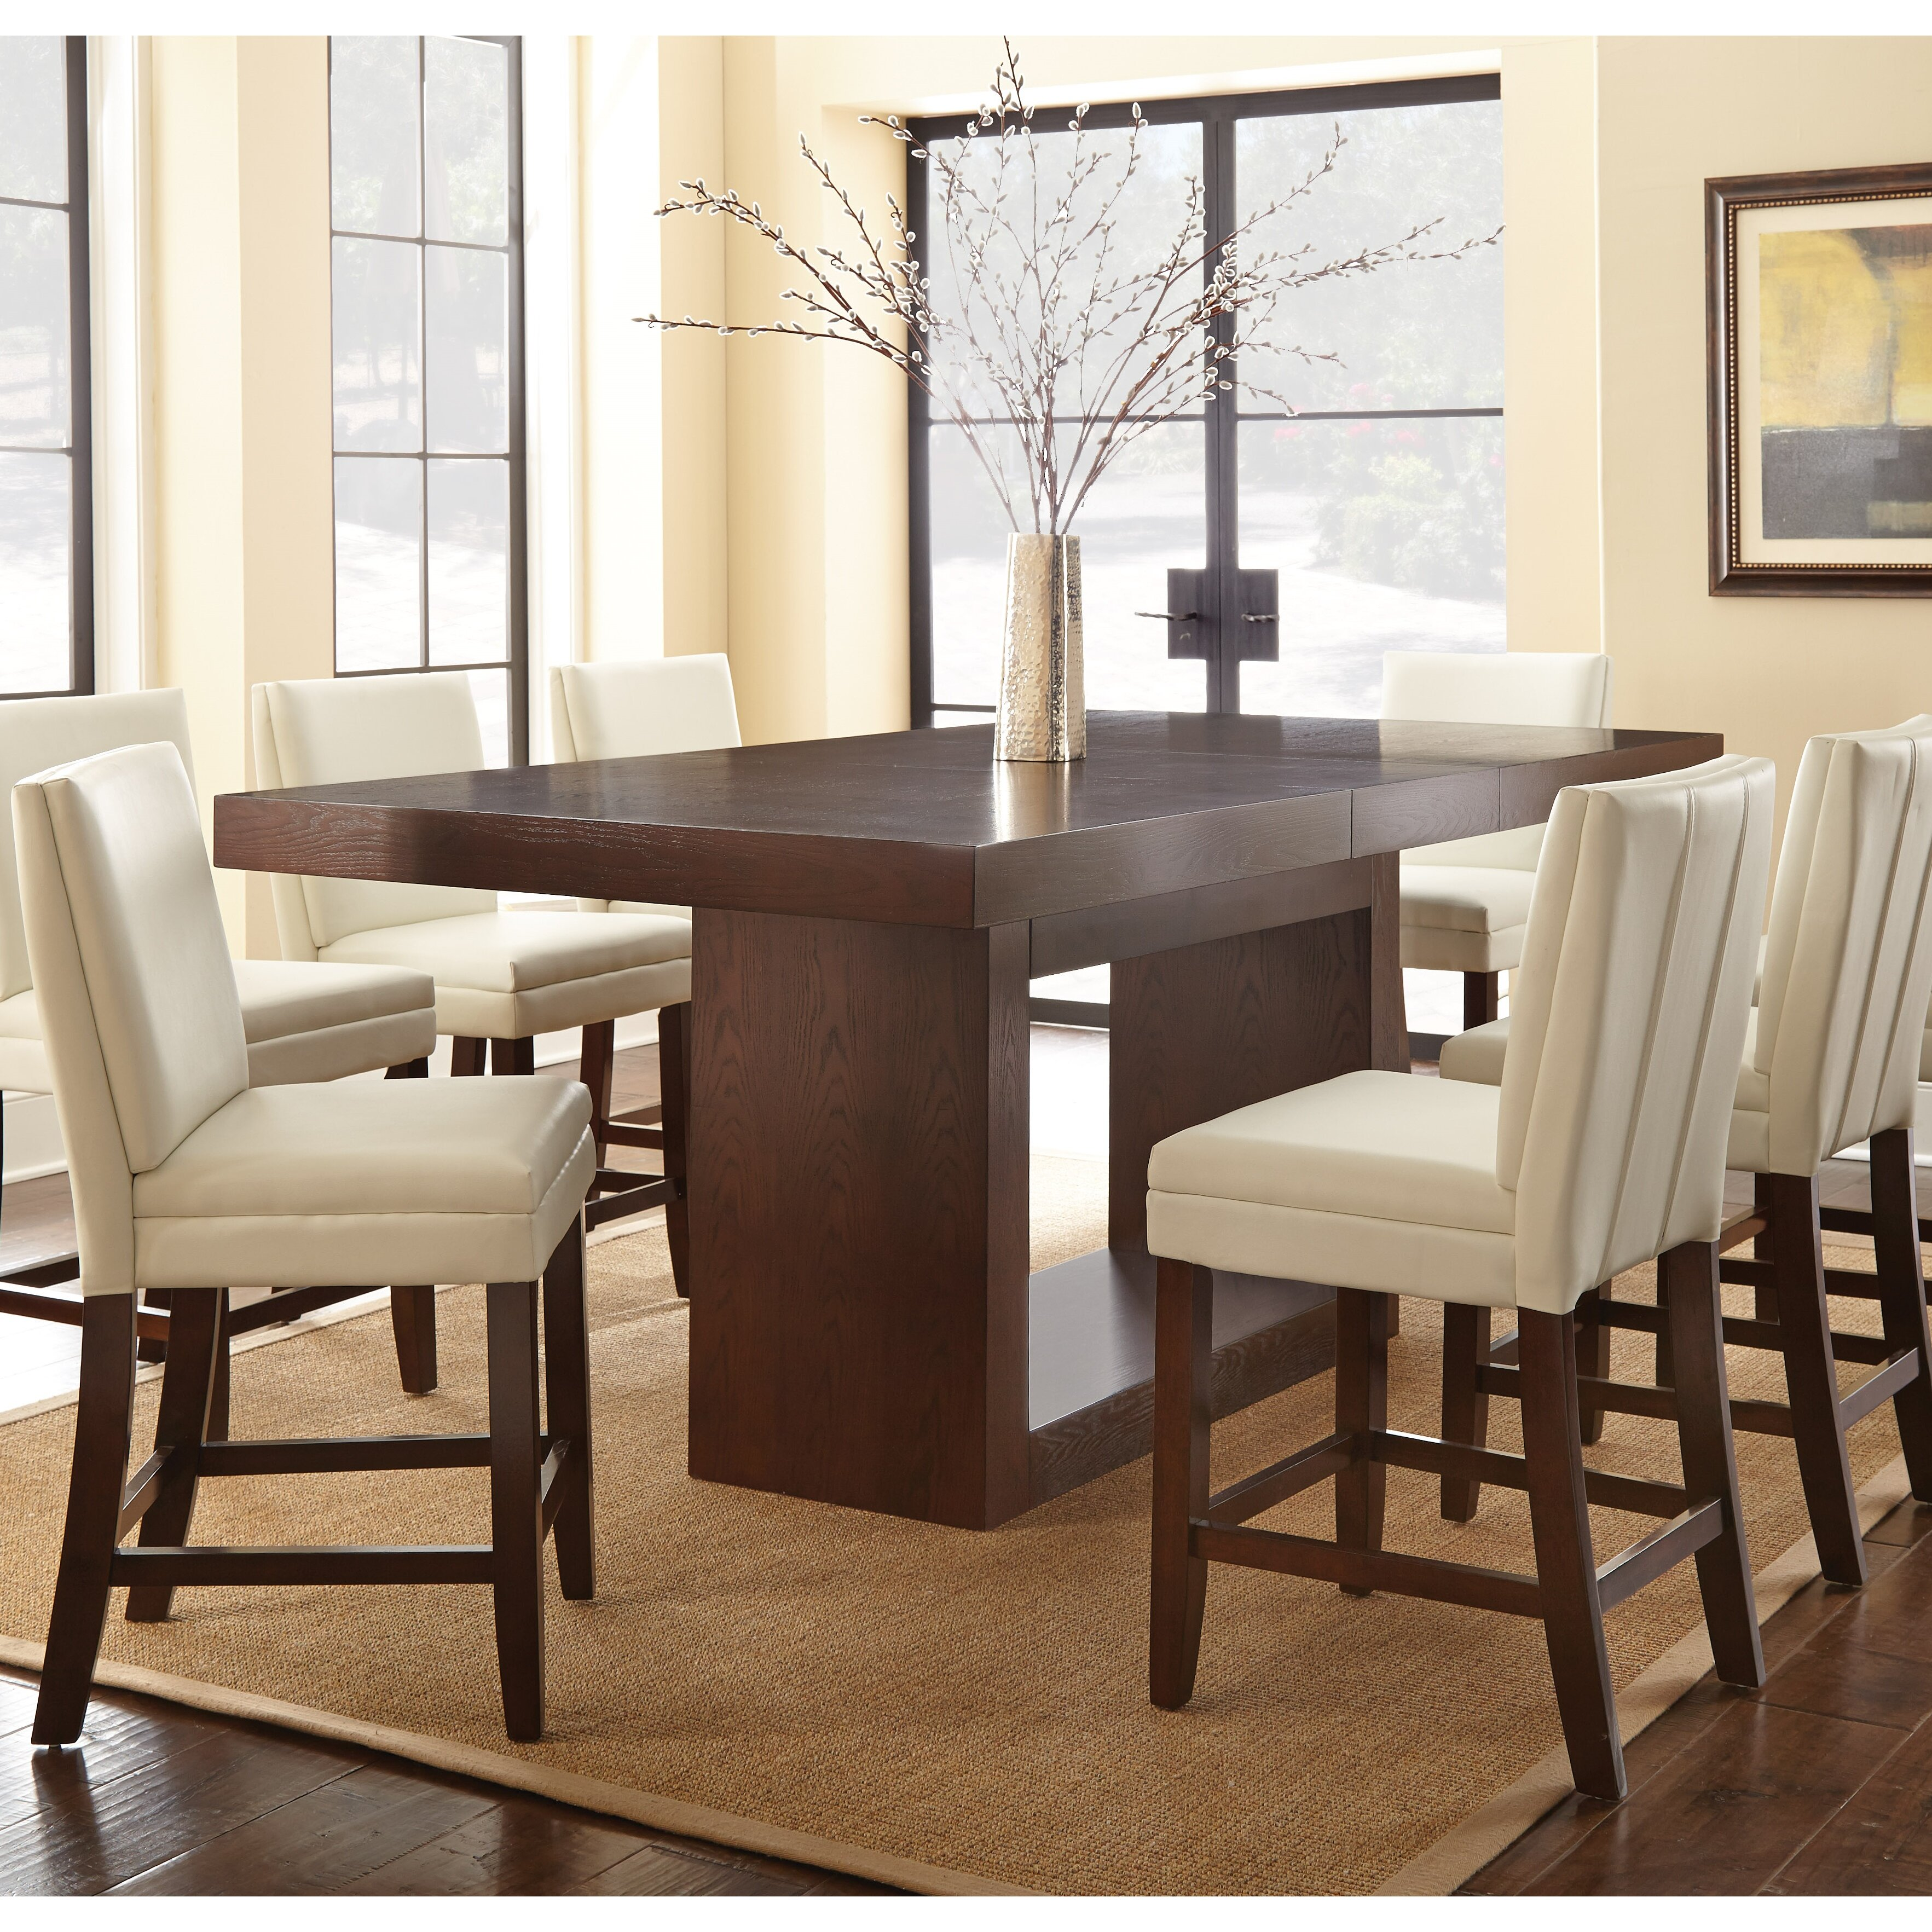 brayden studio antonio counter height dining table